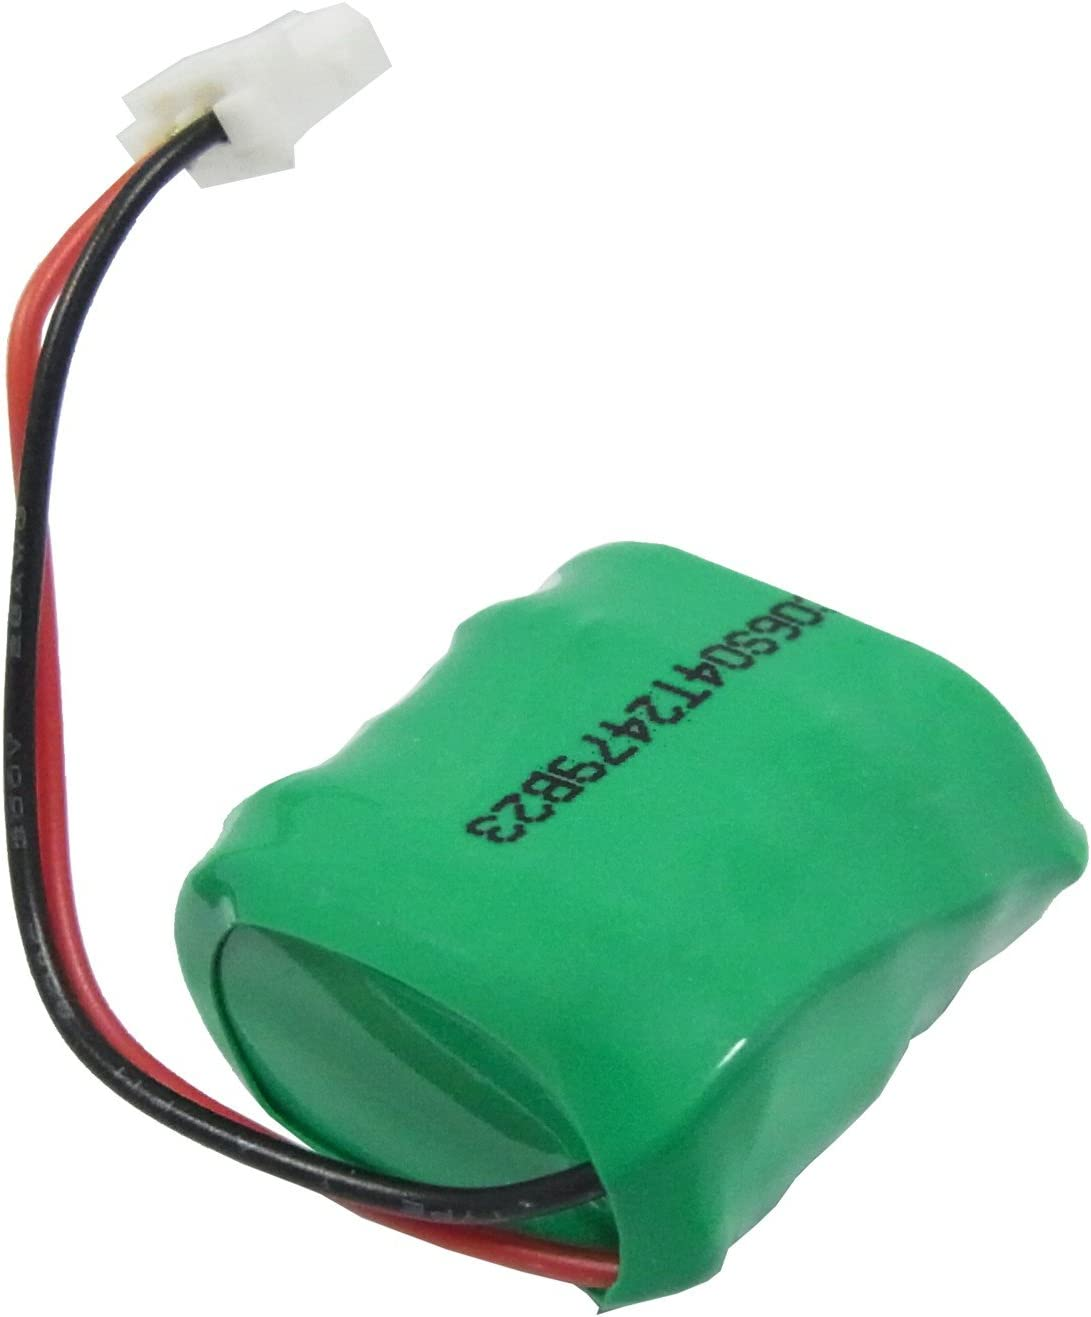 Quick Check 200 200mAh Battery Replacement for PSC Quick Check 150 ...